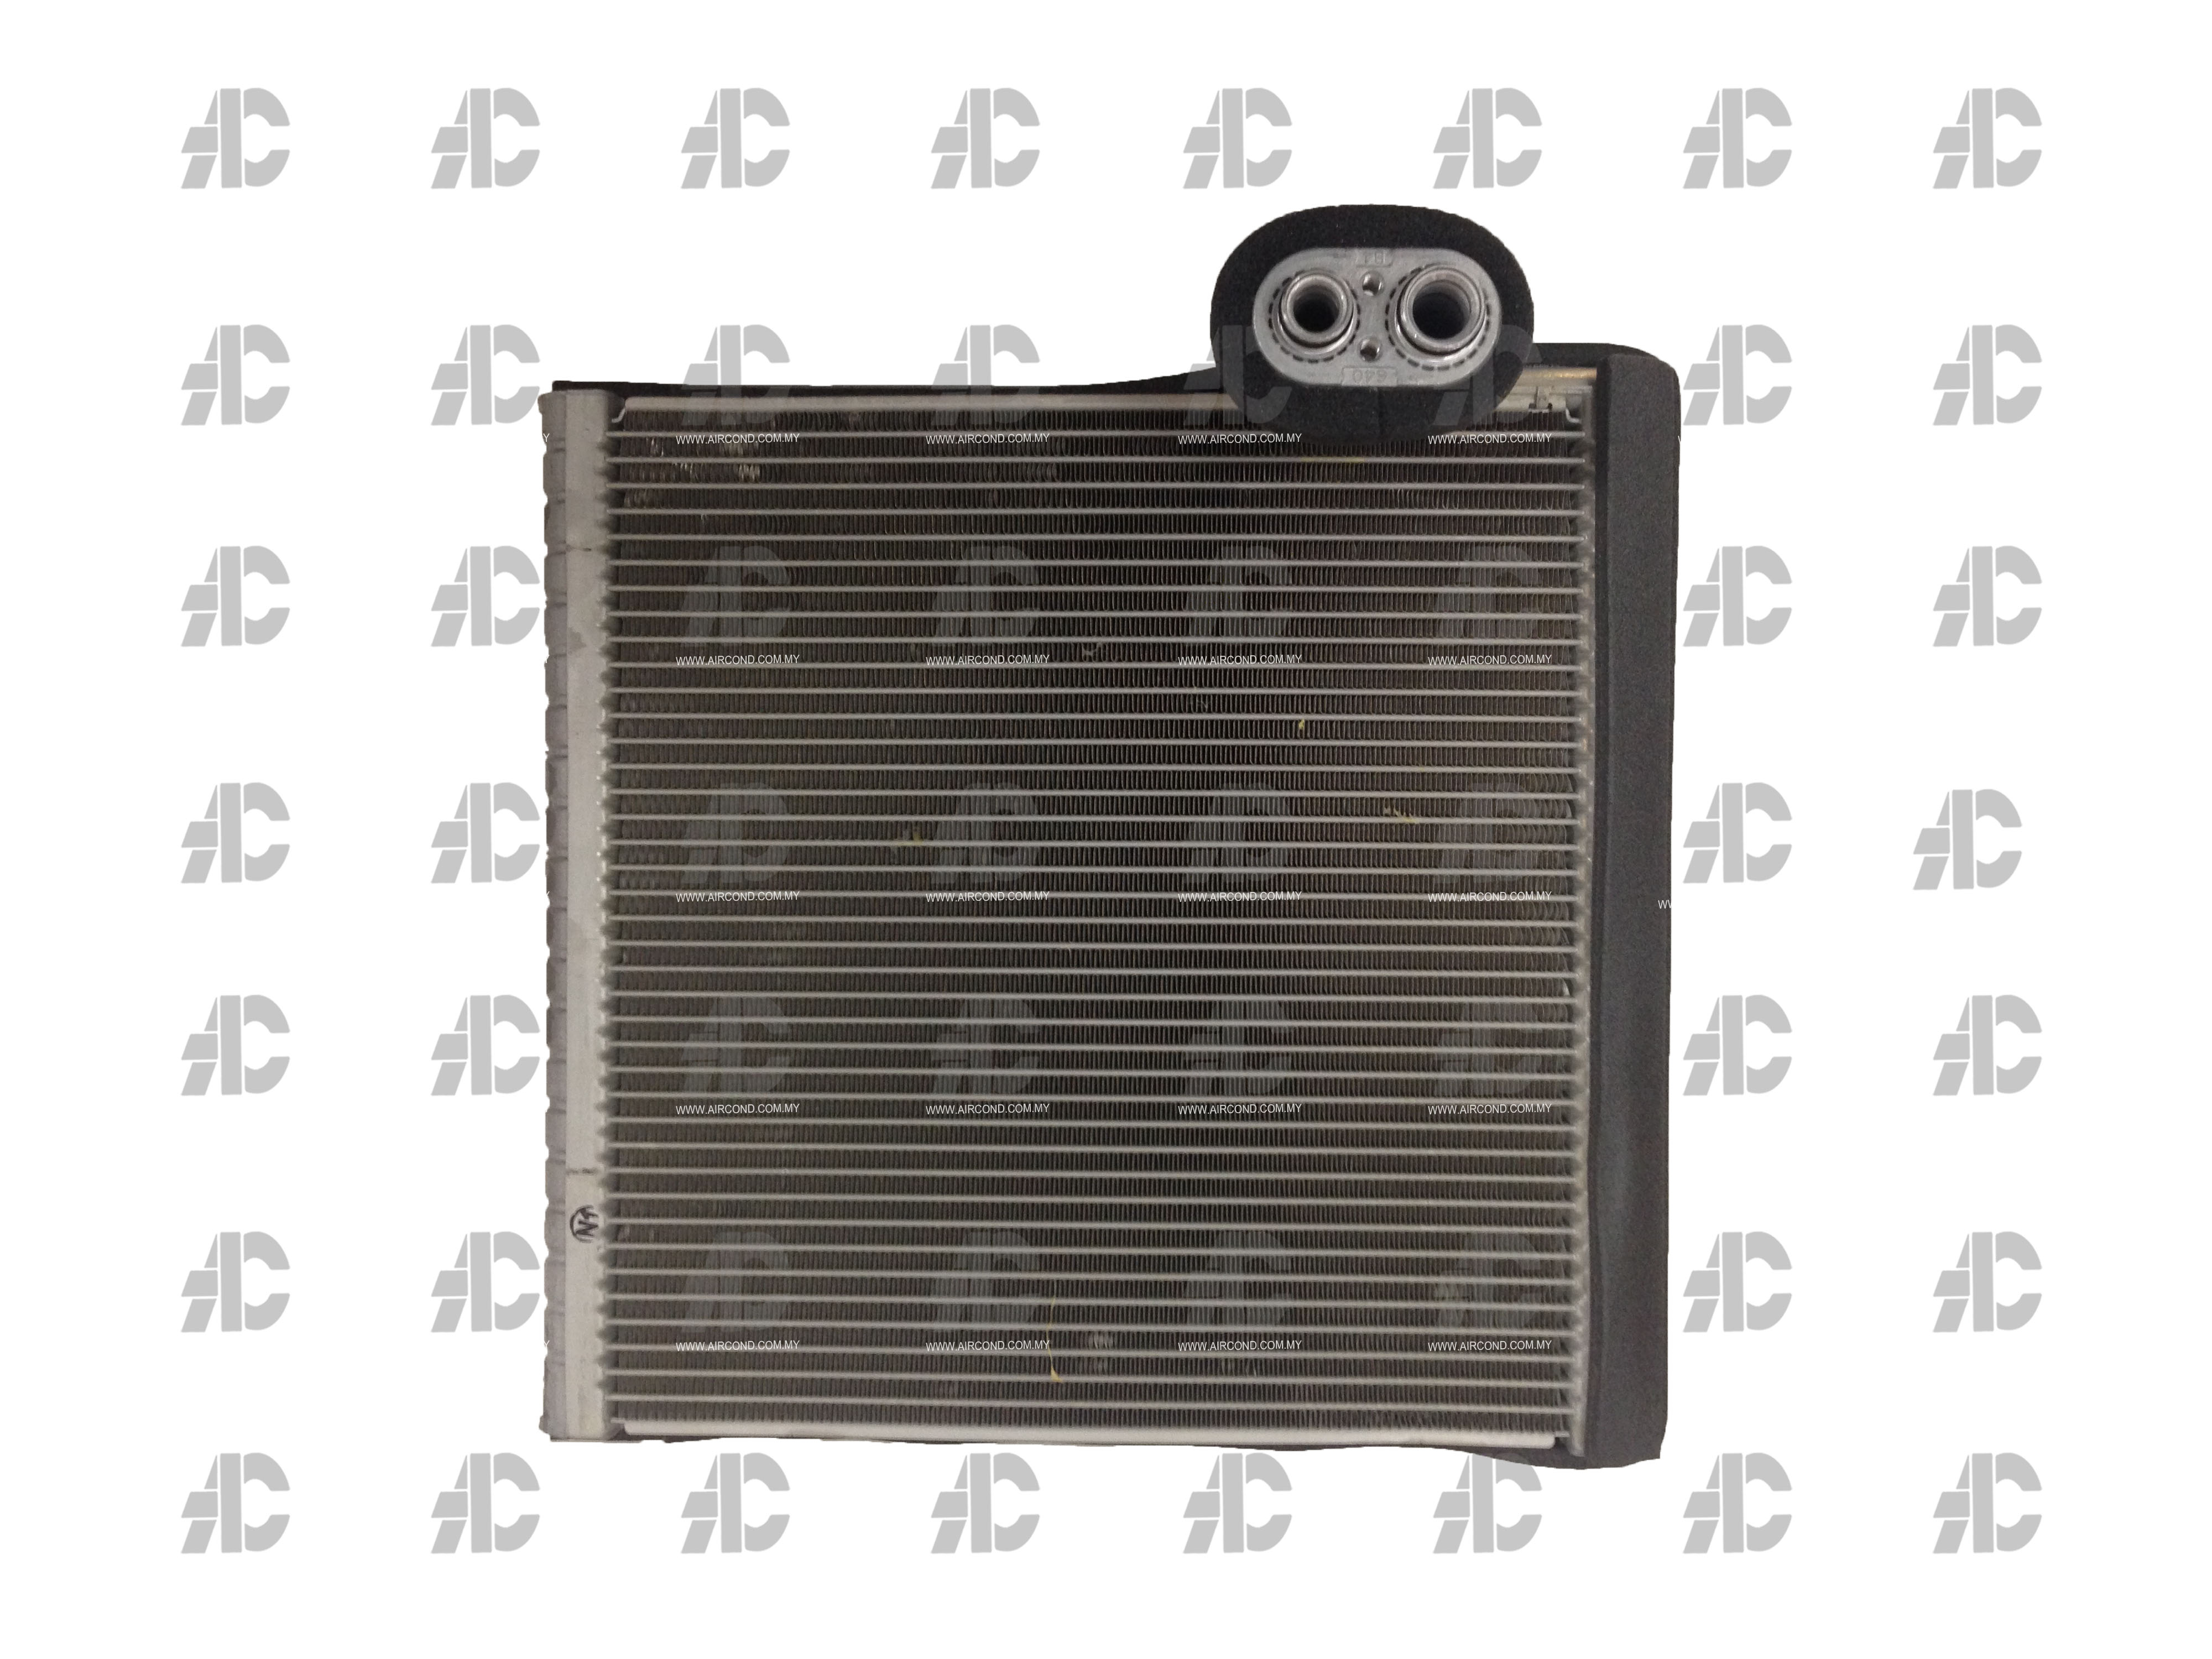 COOLING COIL / EVAPORATOR TOYOTA (DENSO) - TG446610-46503D